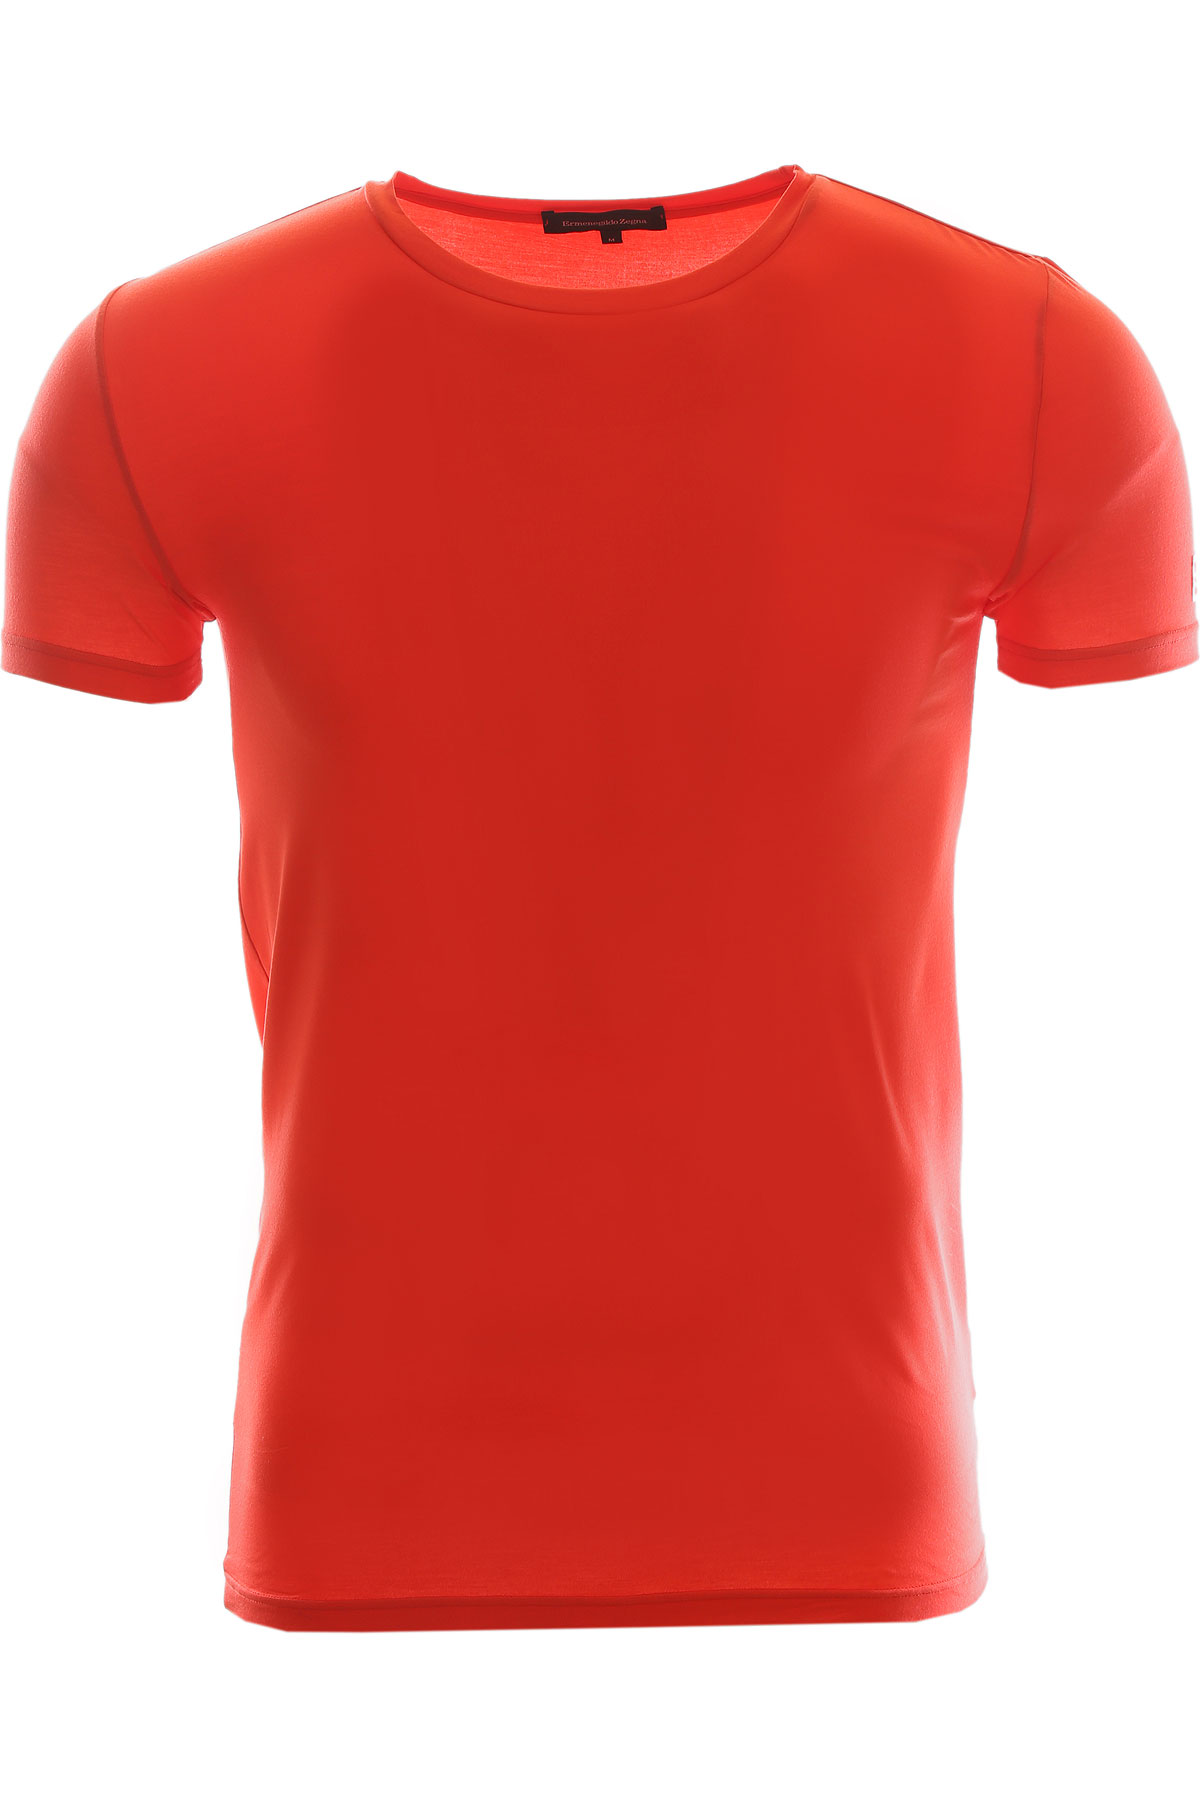 Ermenegildo Zegna Mens Clothing On Sale, Coral, Modal, 2019, L M S XL